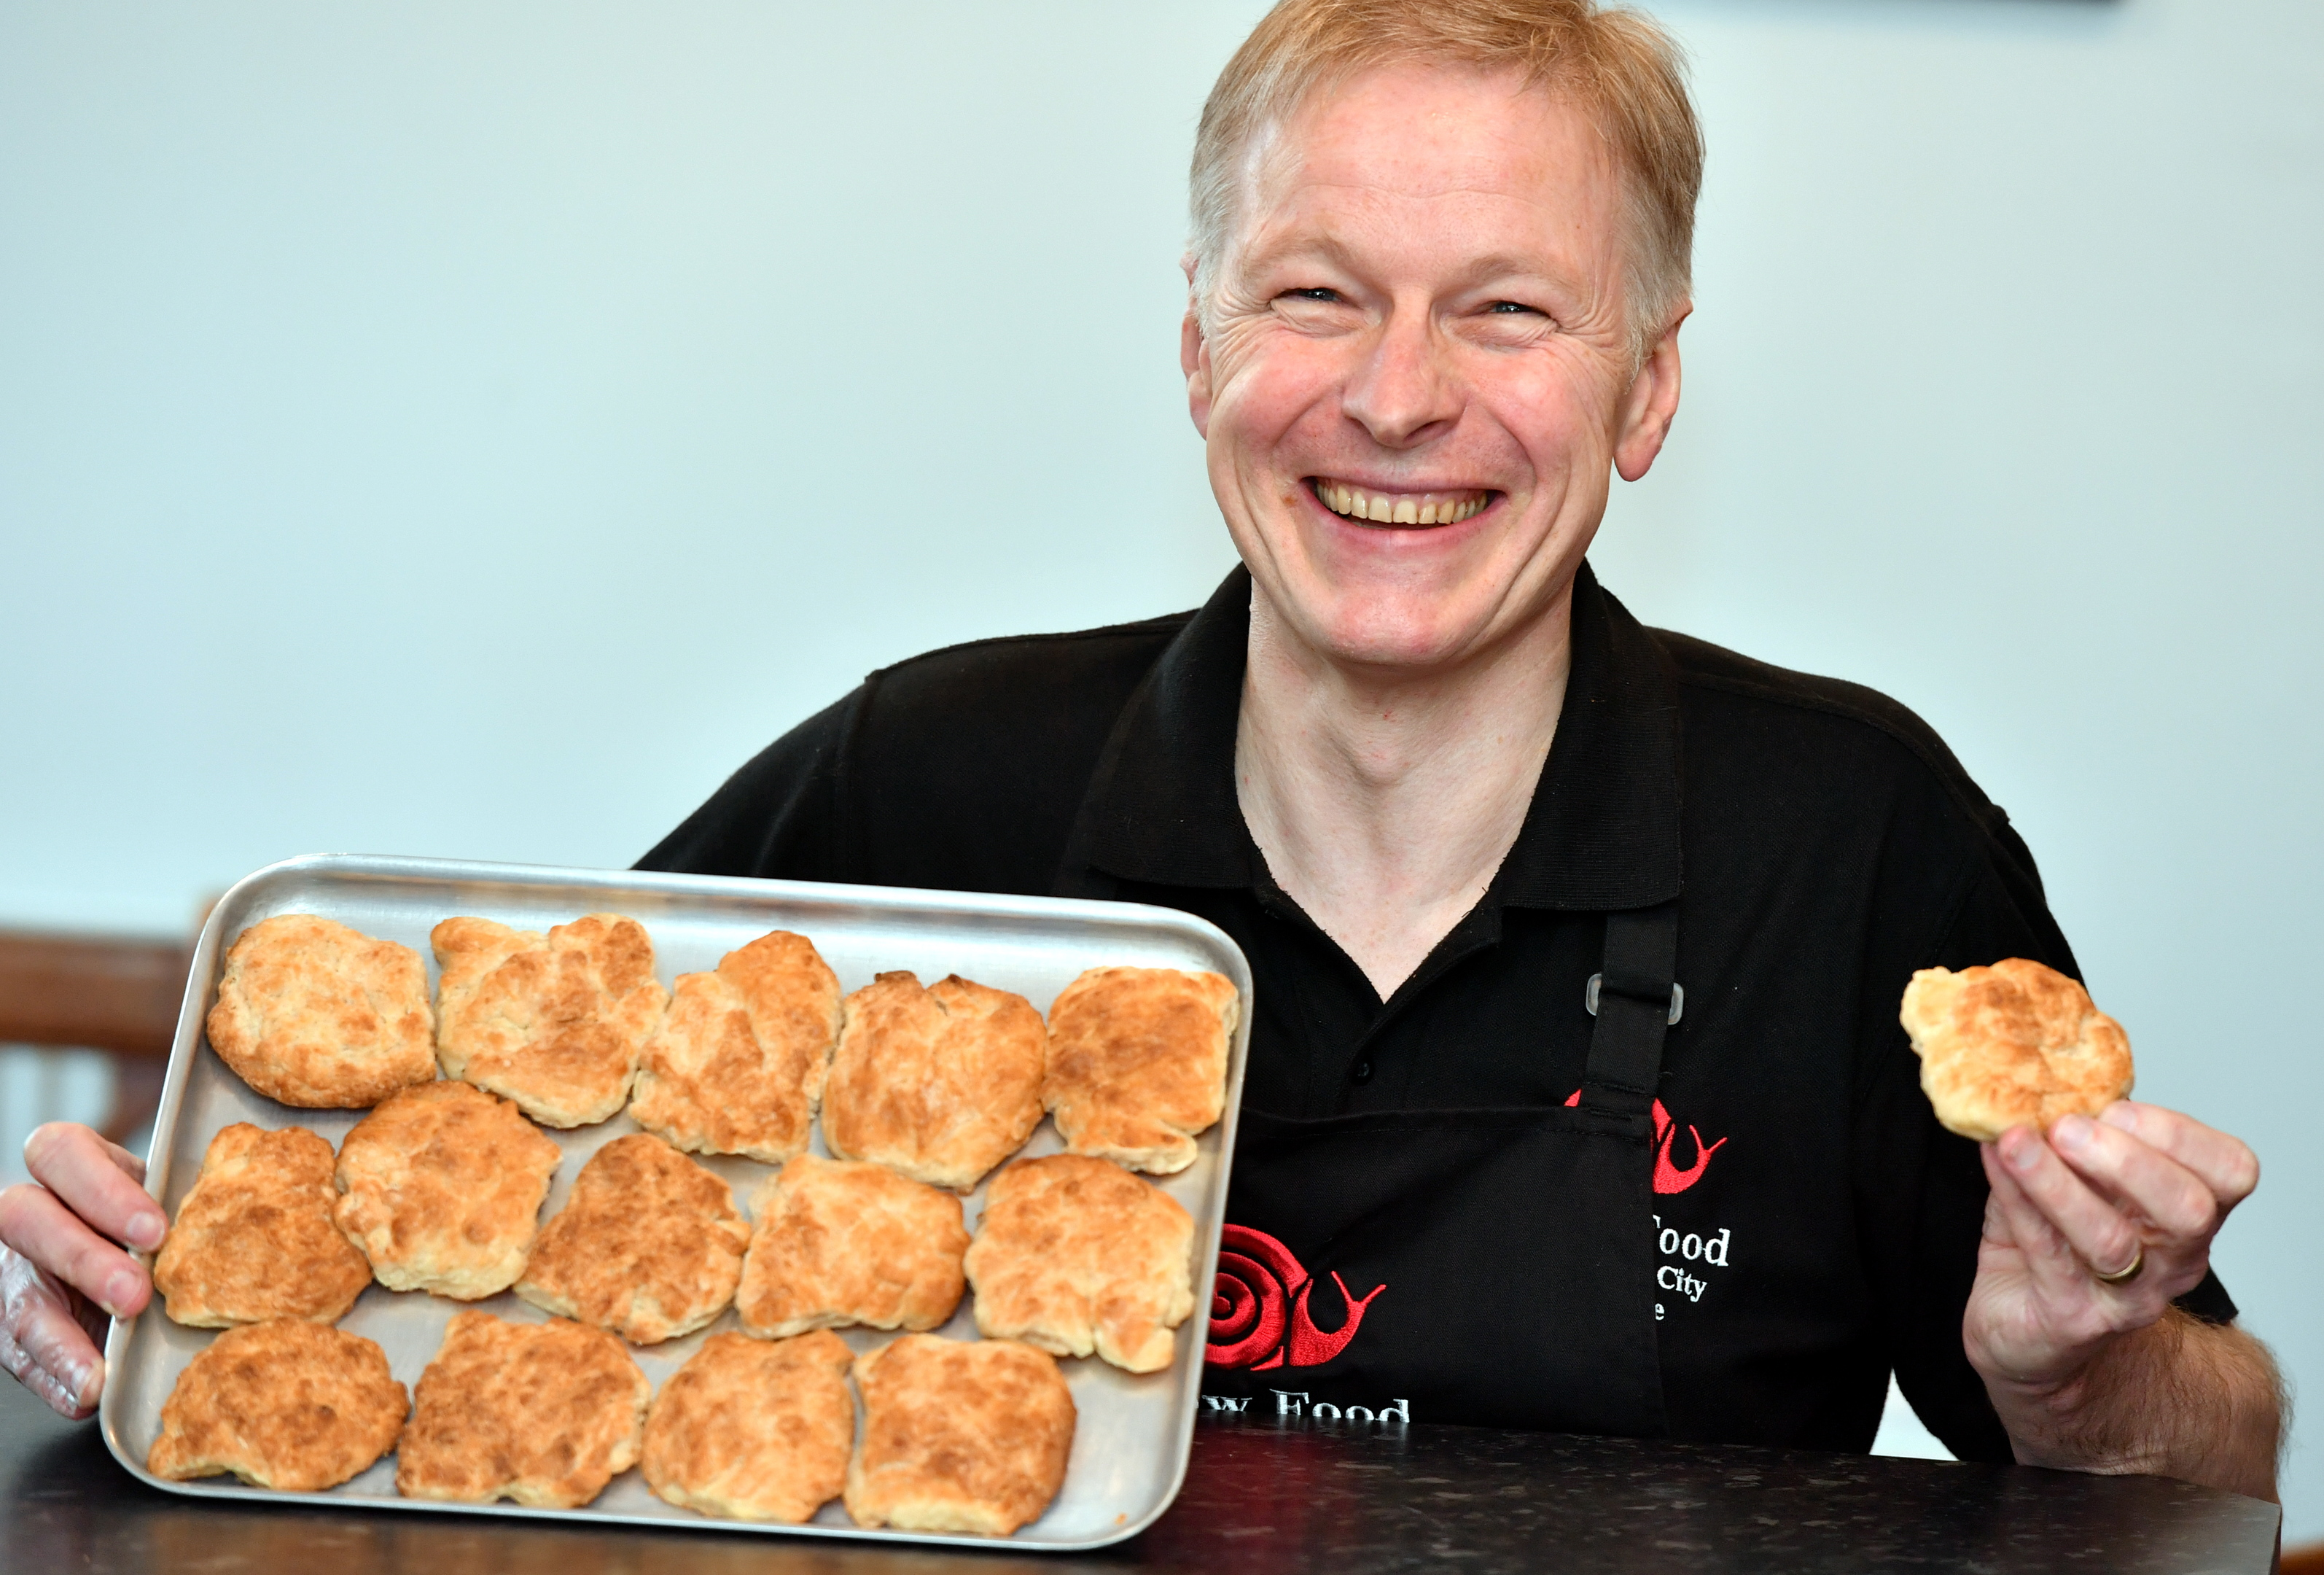 Slow Food Aberdeen City and Shire are organising the first World Buttery Championship